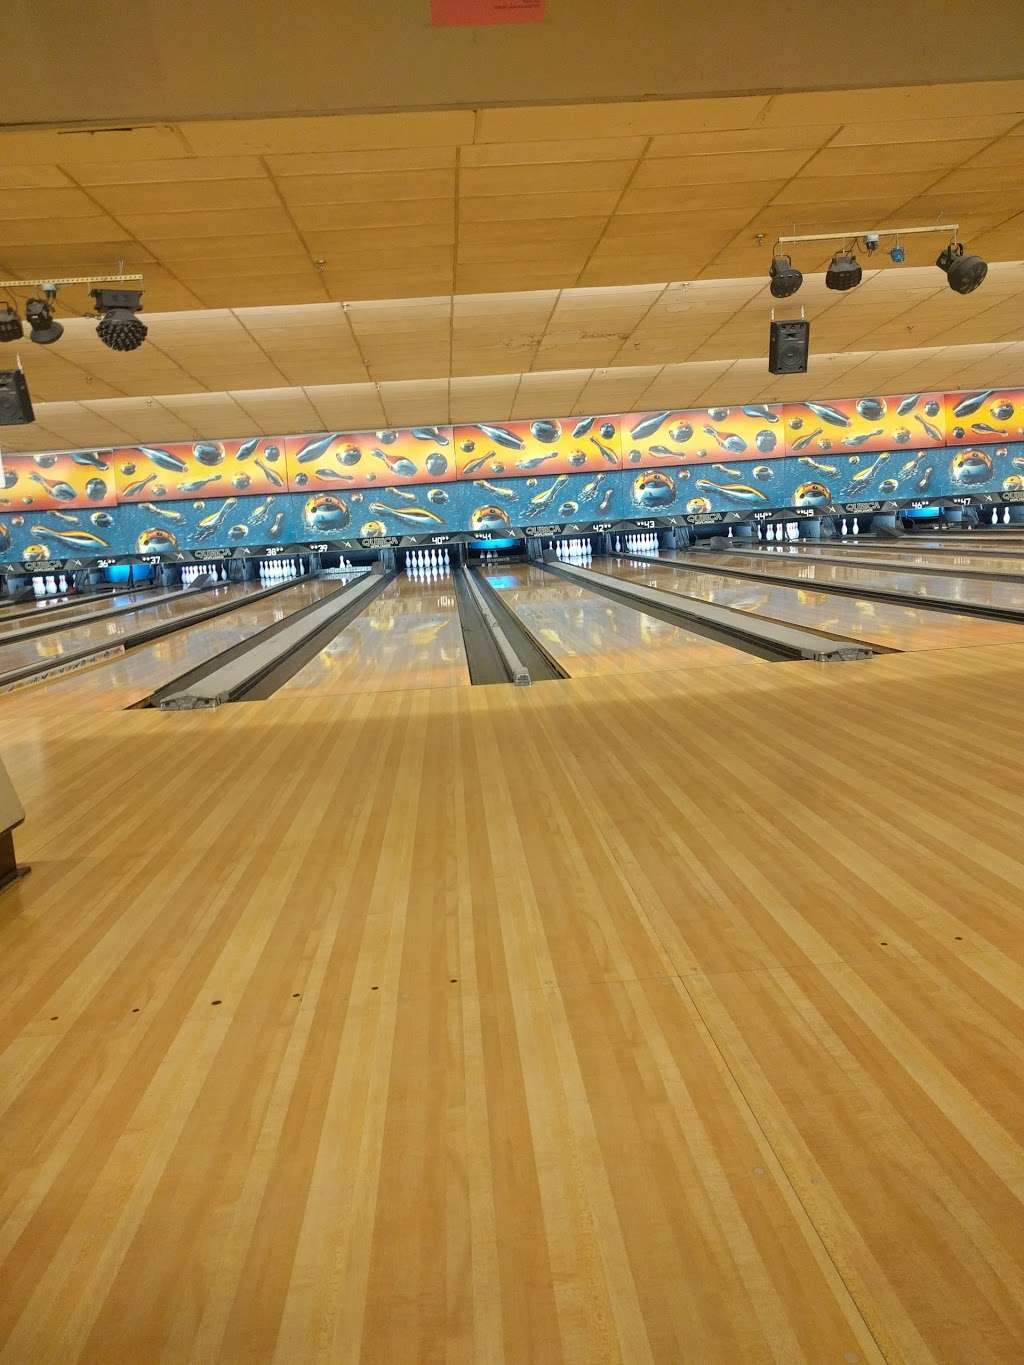 Hudson Lanes - bowling alley  | Photo 9 of 10 | Address: 1 Garfield Ave, Jersey City, NJ 07305, USA | Phone: (201) 432-5900